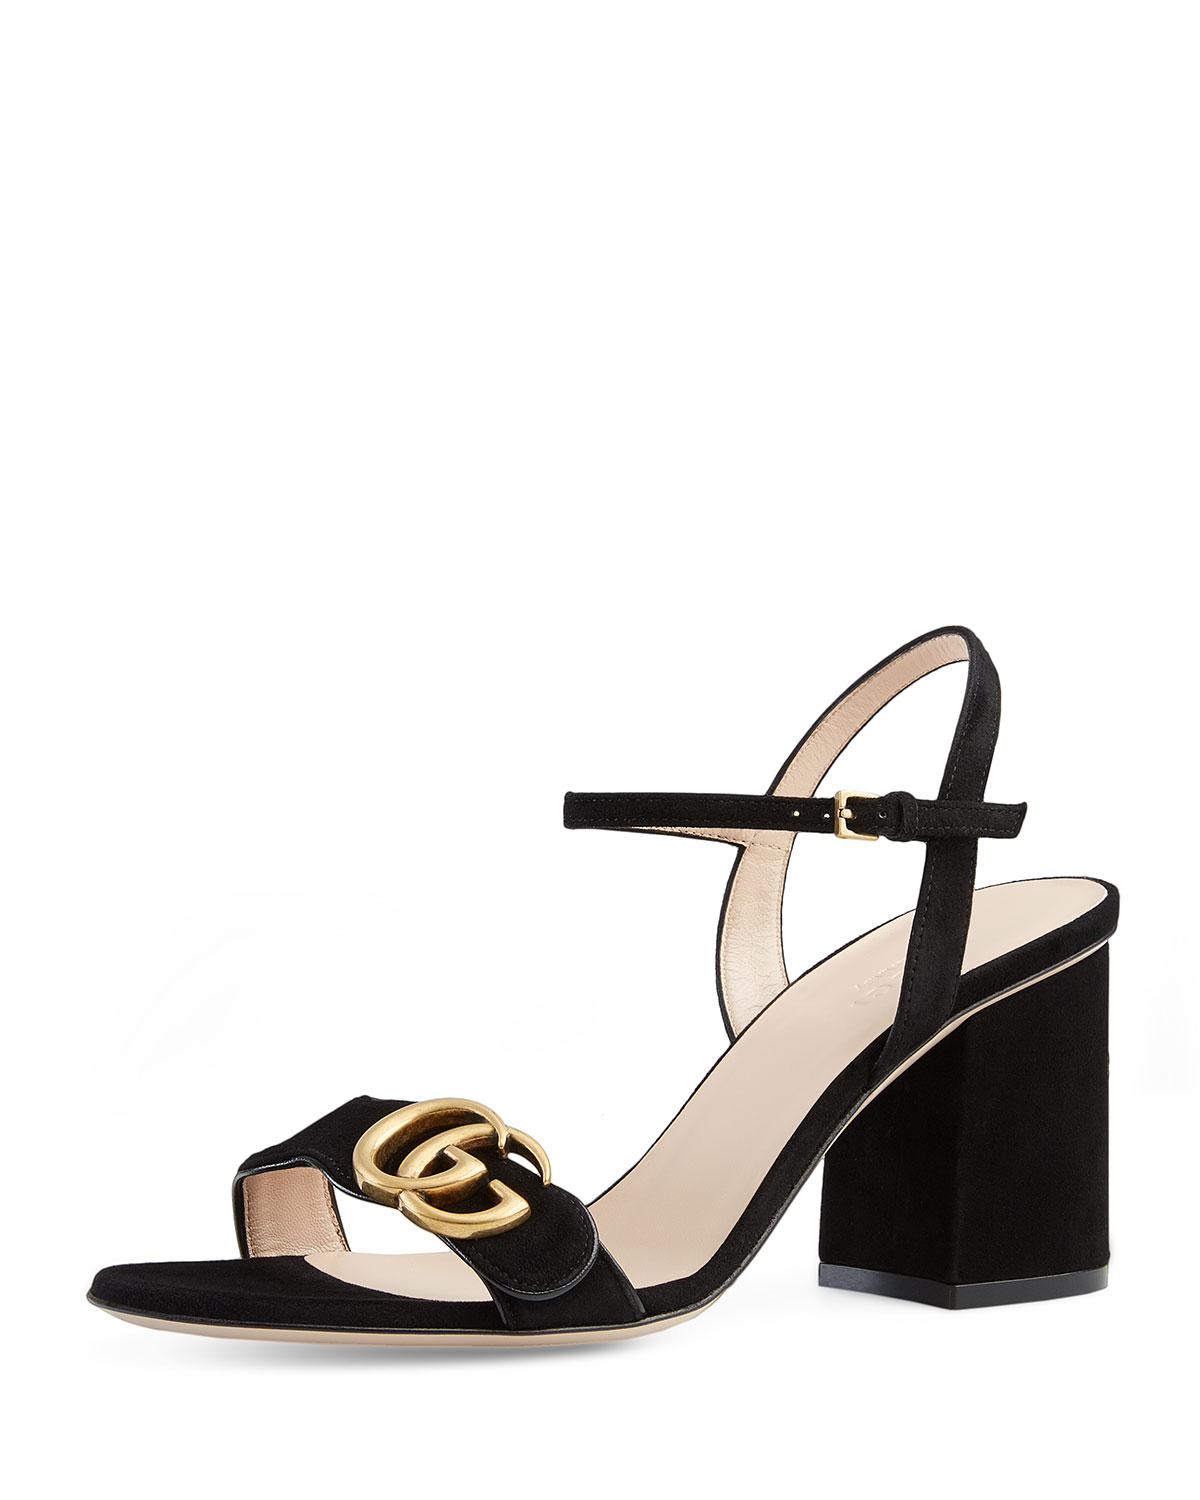 bb13bb79c68 Gucci Marmont Suede 75mm Sandal